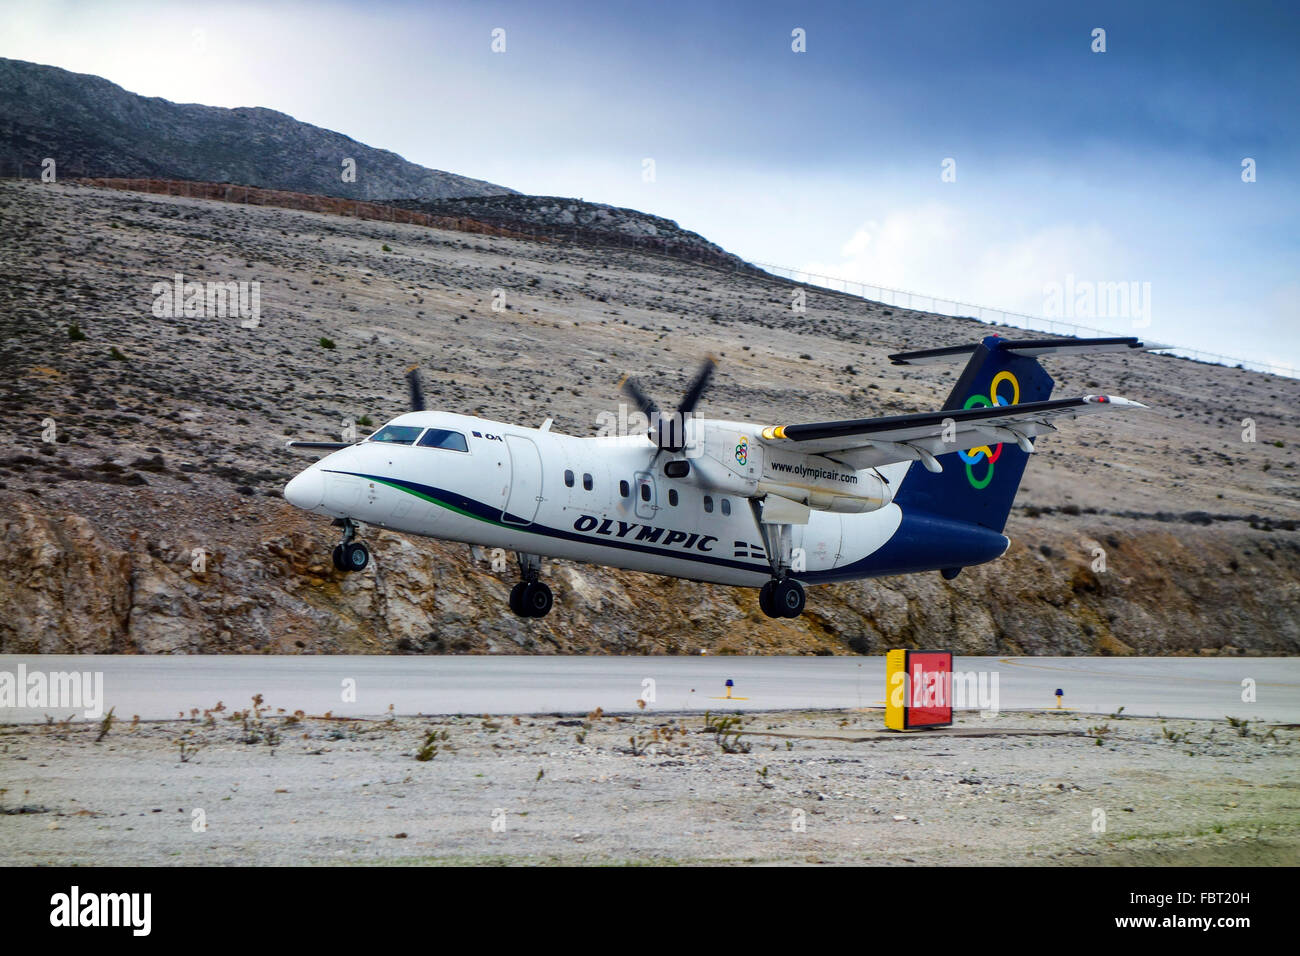 Aegean Airlines Bombardier Dash aircraft taking off from Kalymnos - Stock Image